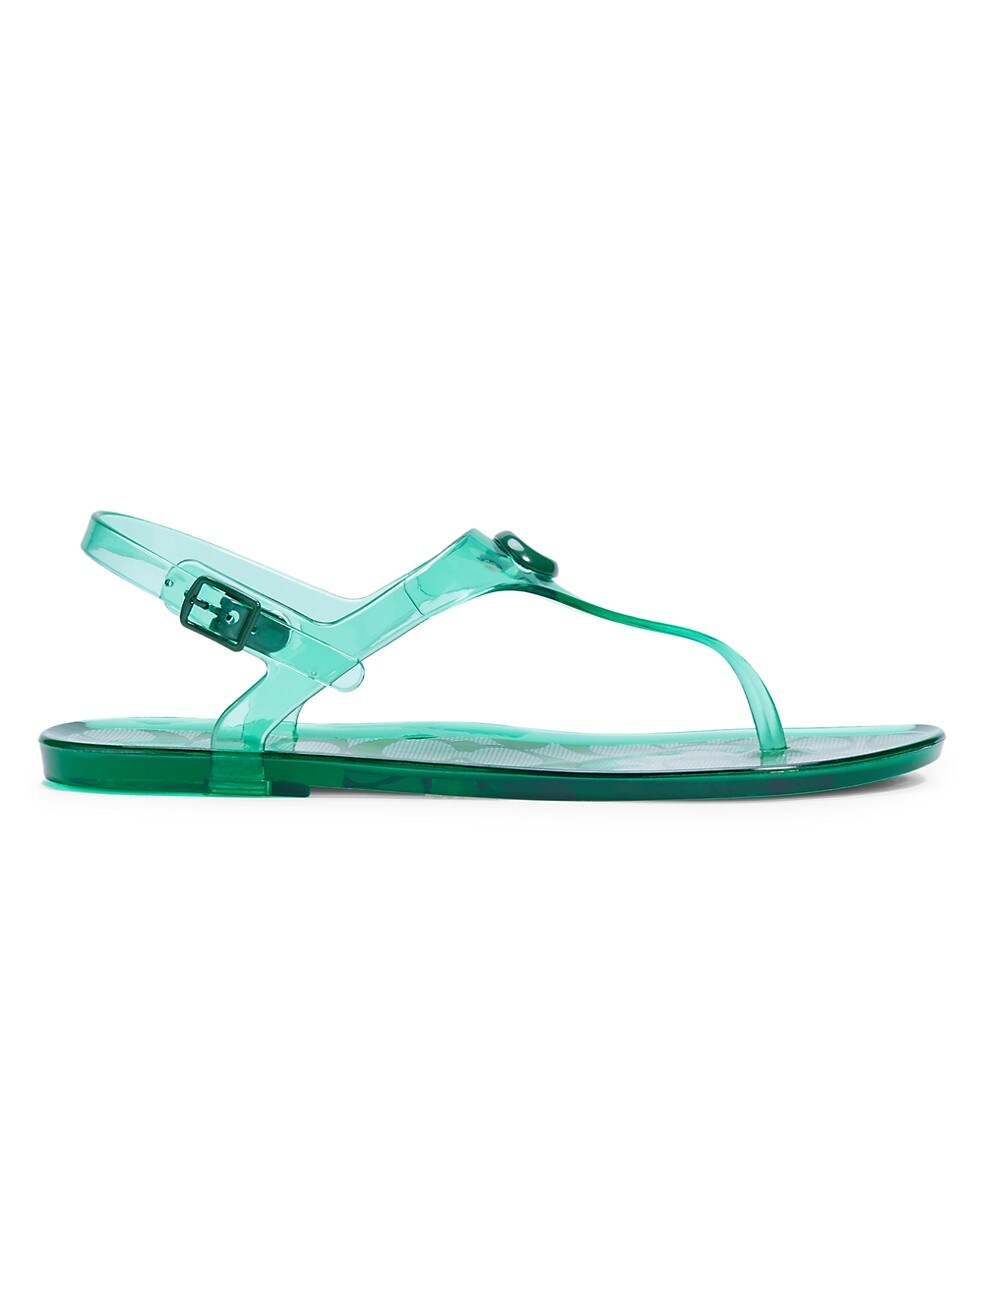 COACH Natalee Jelly Slingback Thong Sandals,GREEN